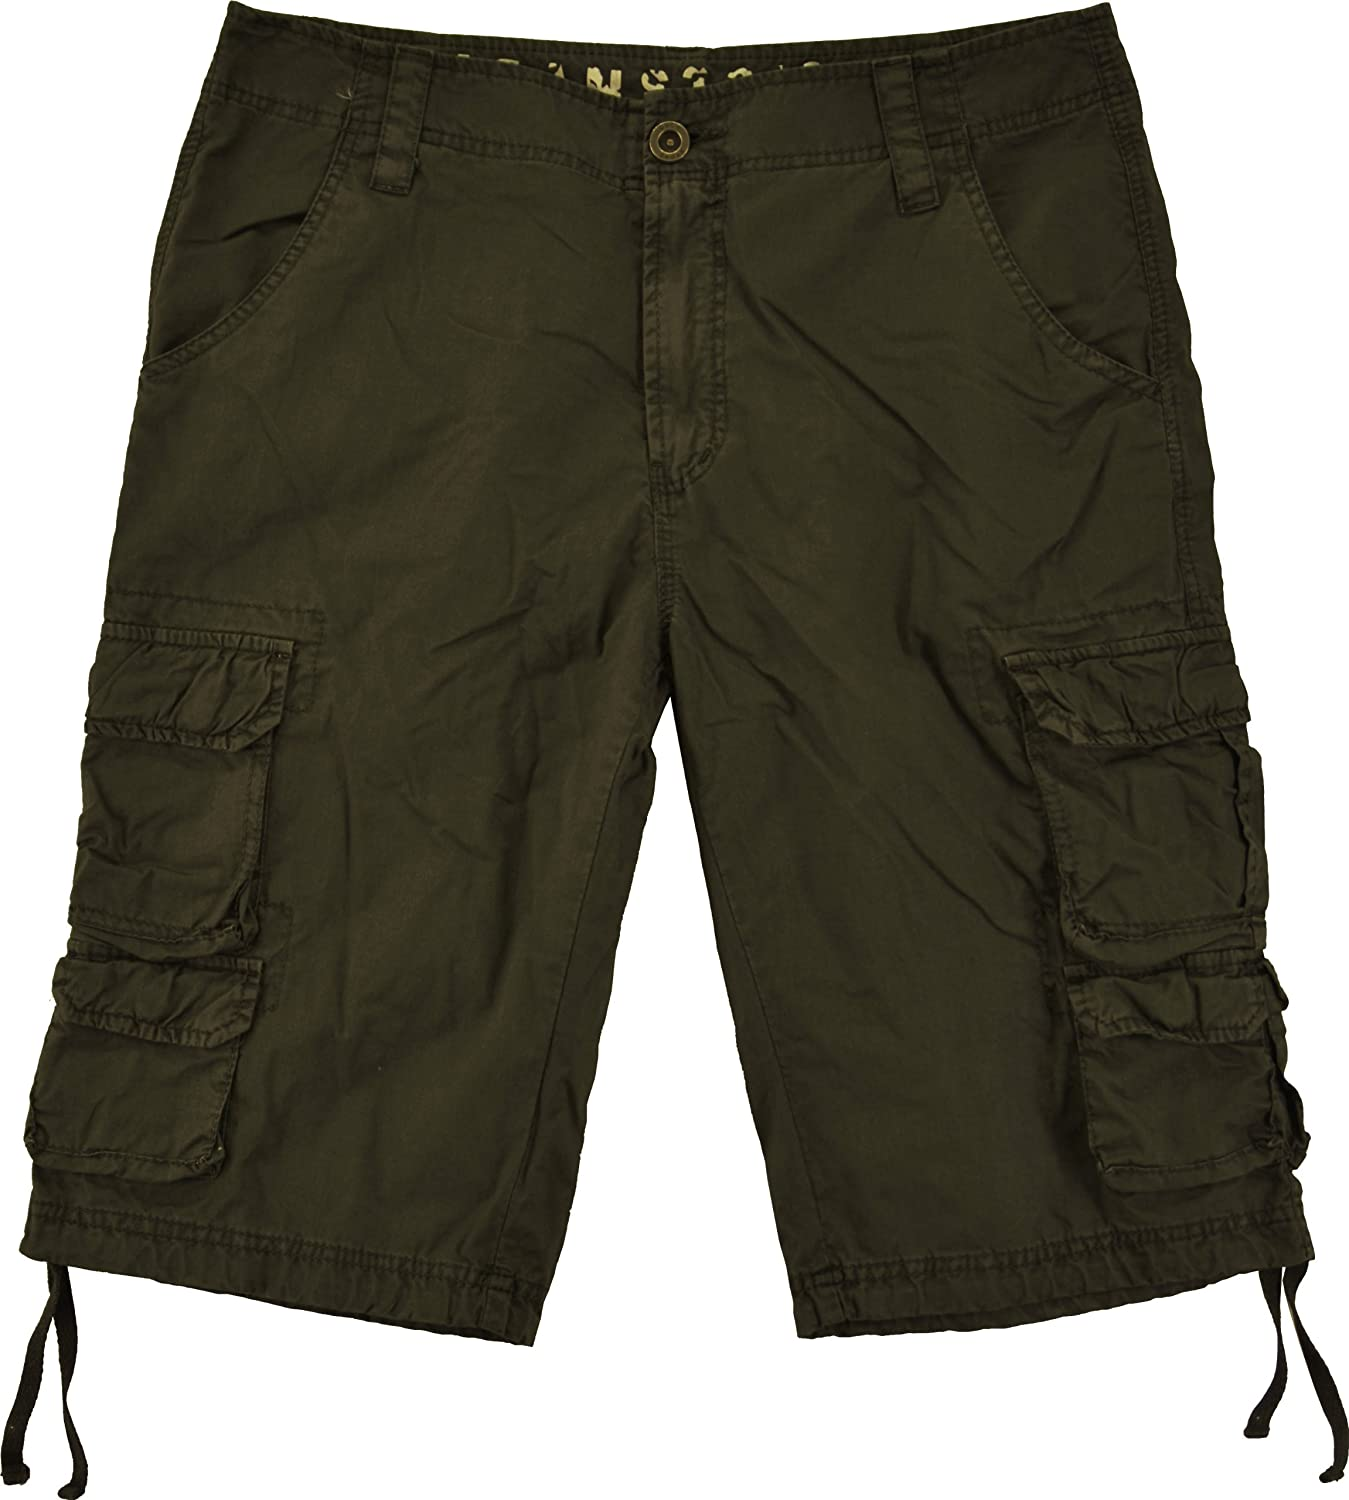 Mens Military Style Cargo Shorts #818s